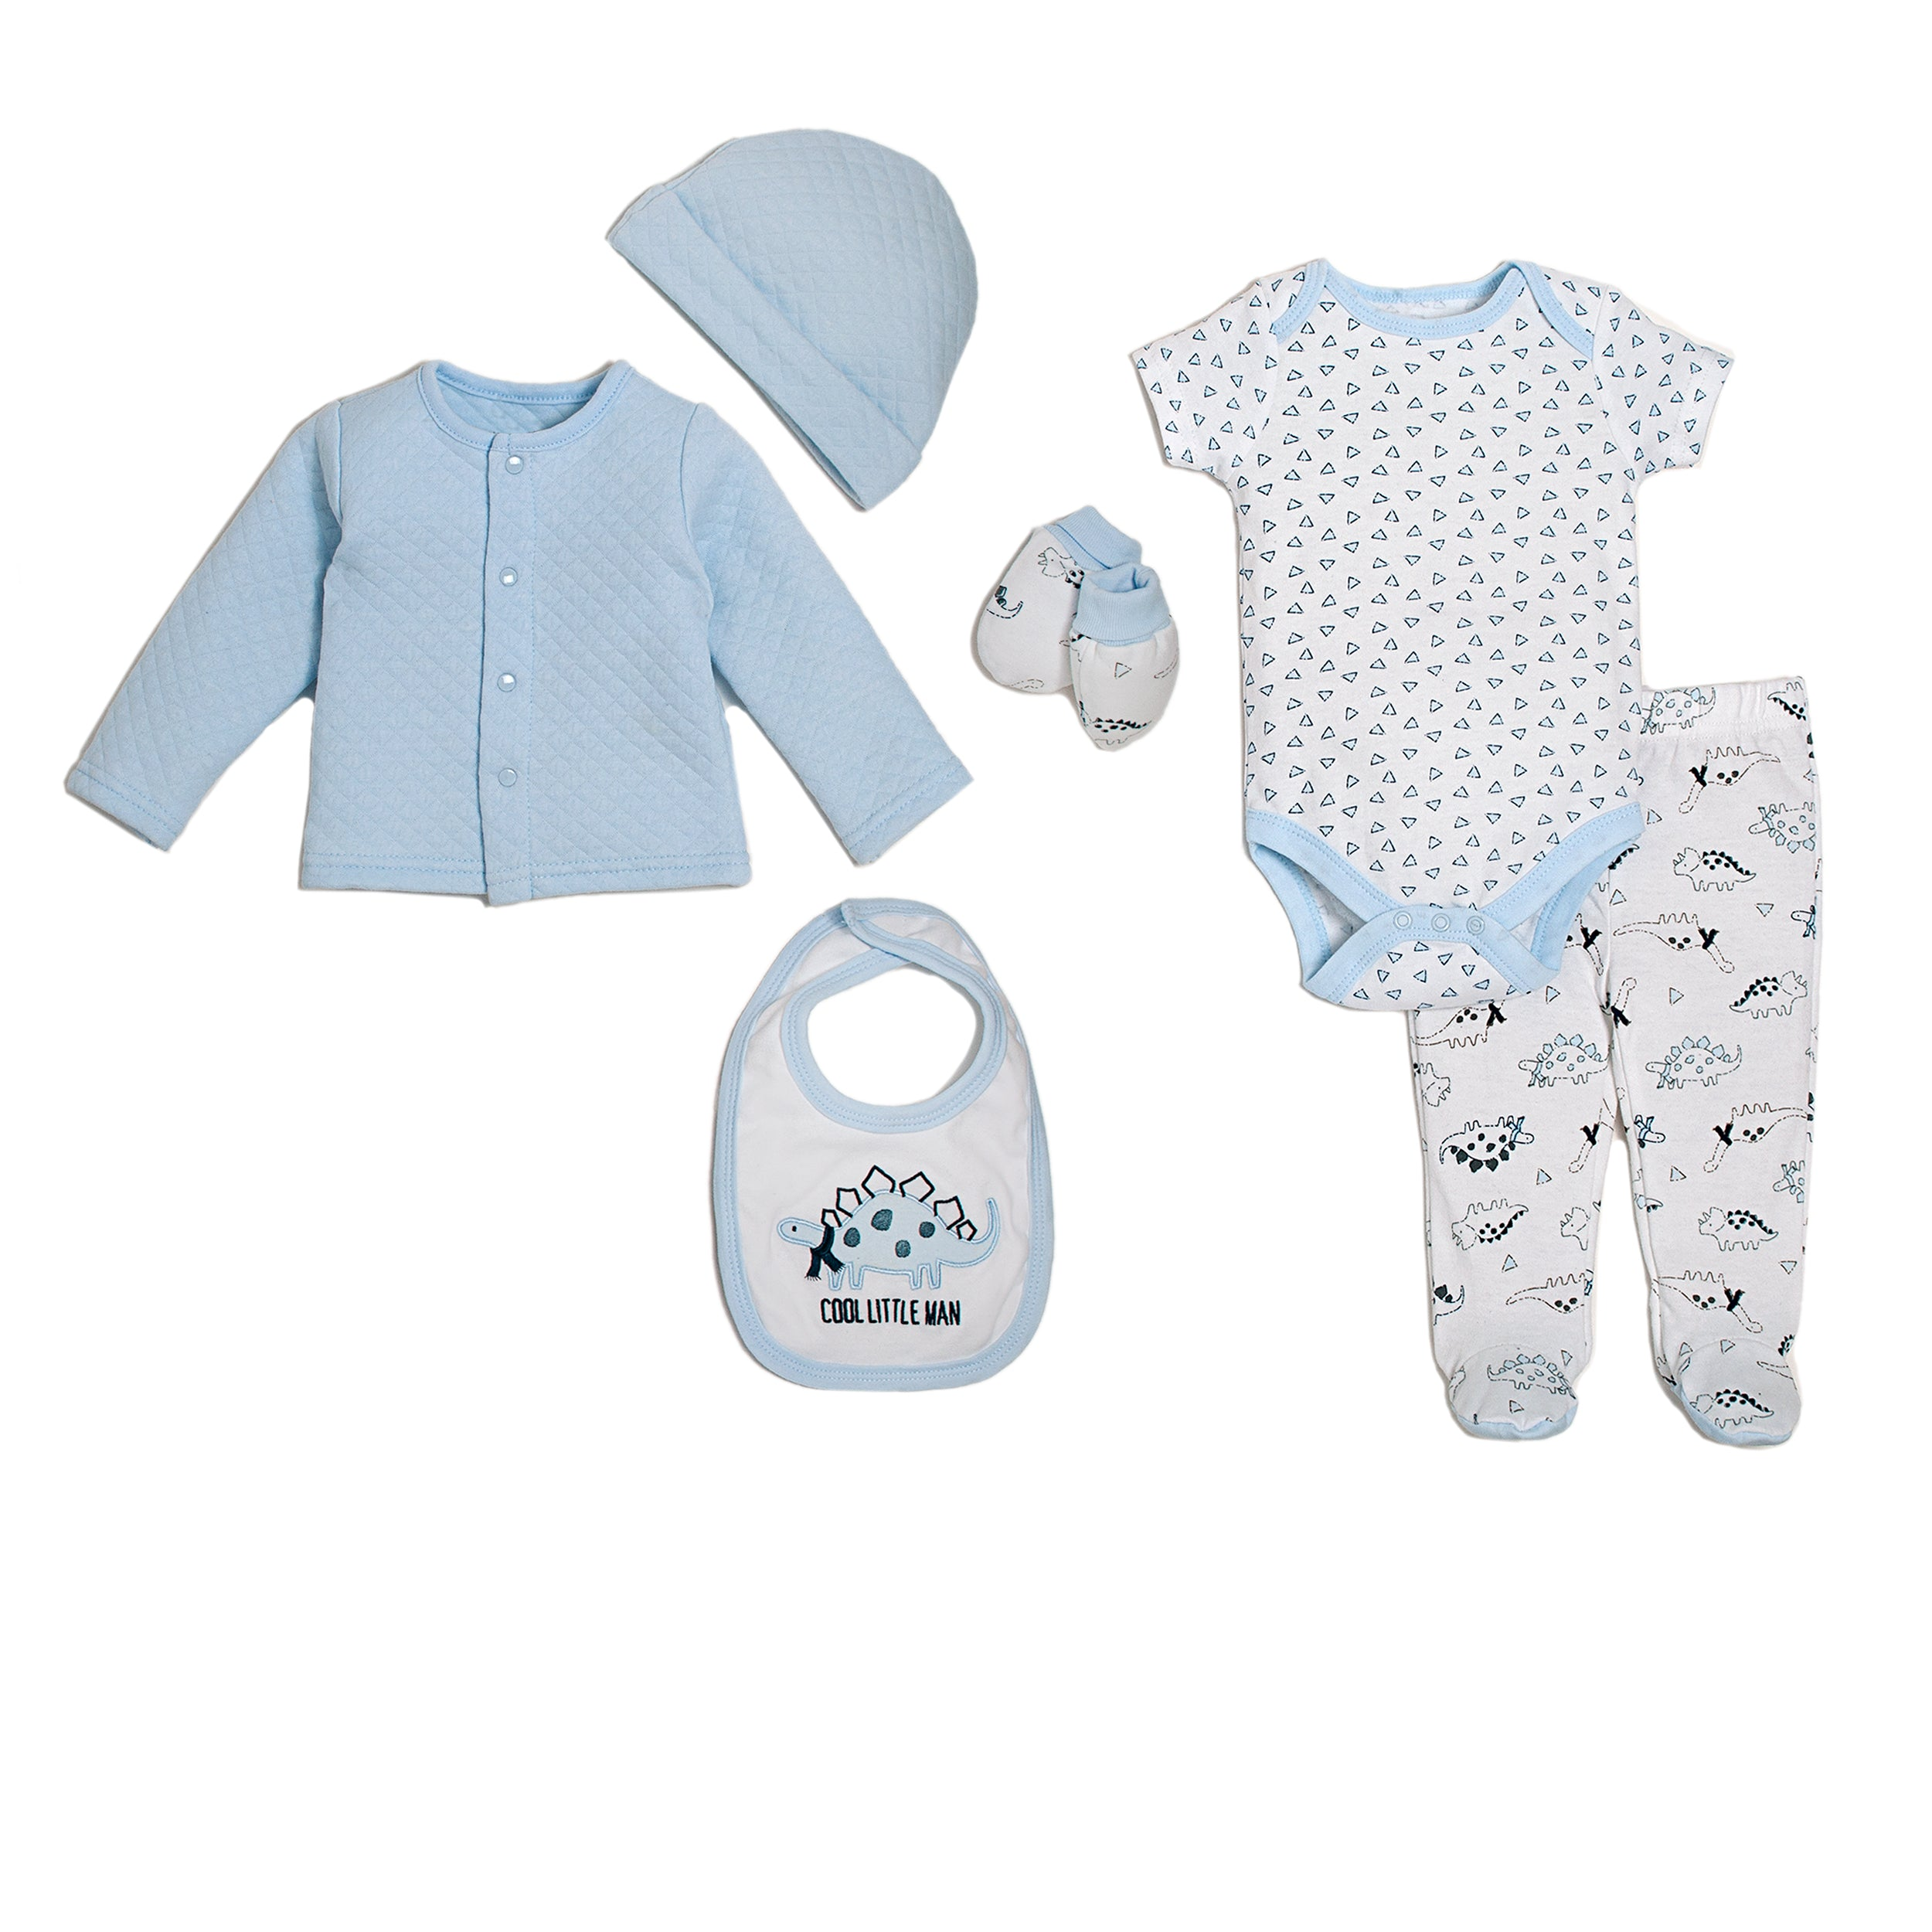 6 Piece Quilted Cardigan Set-Dino Boy